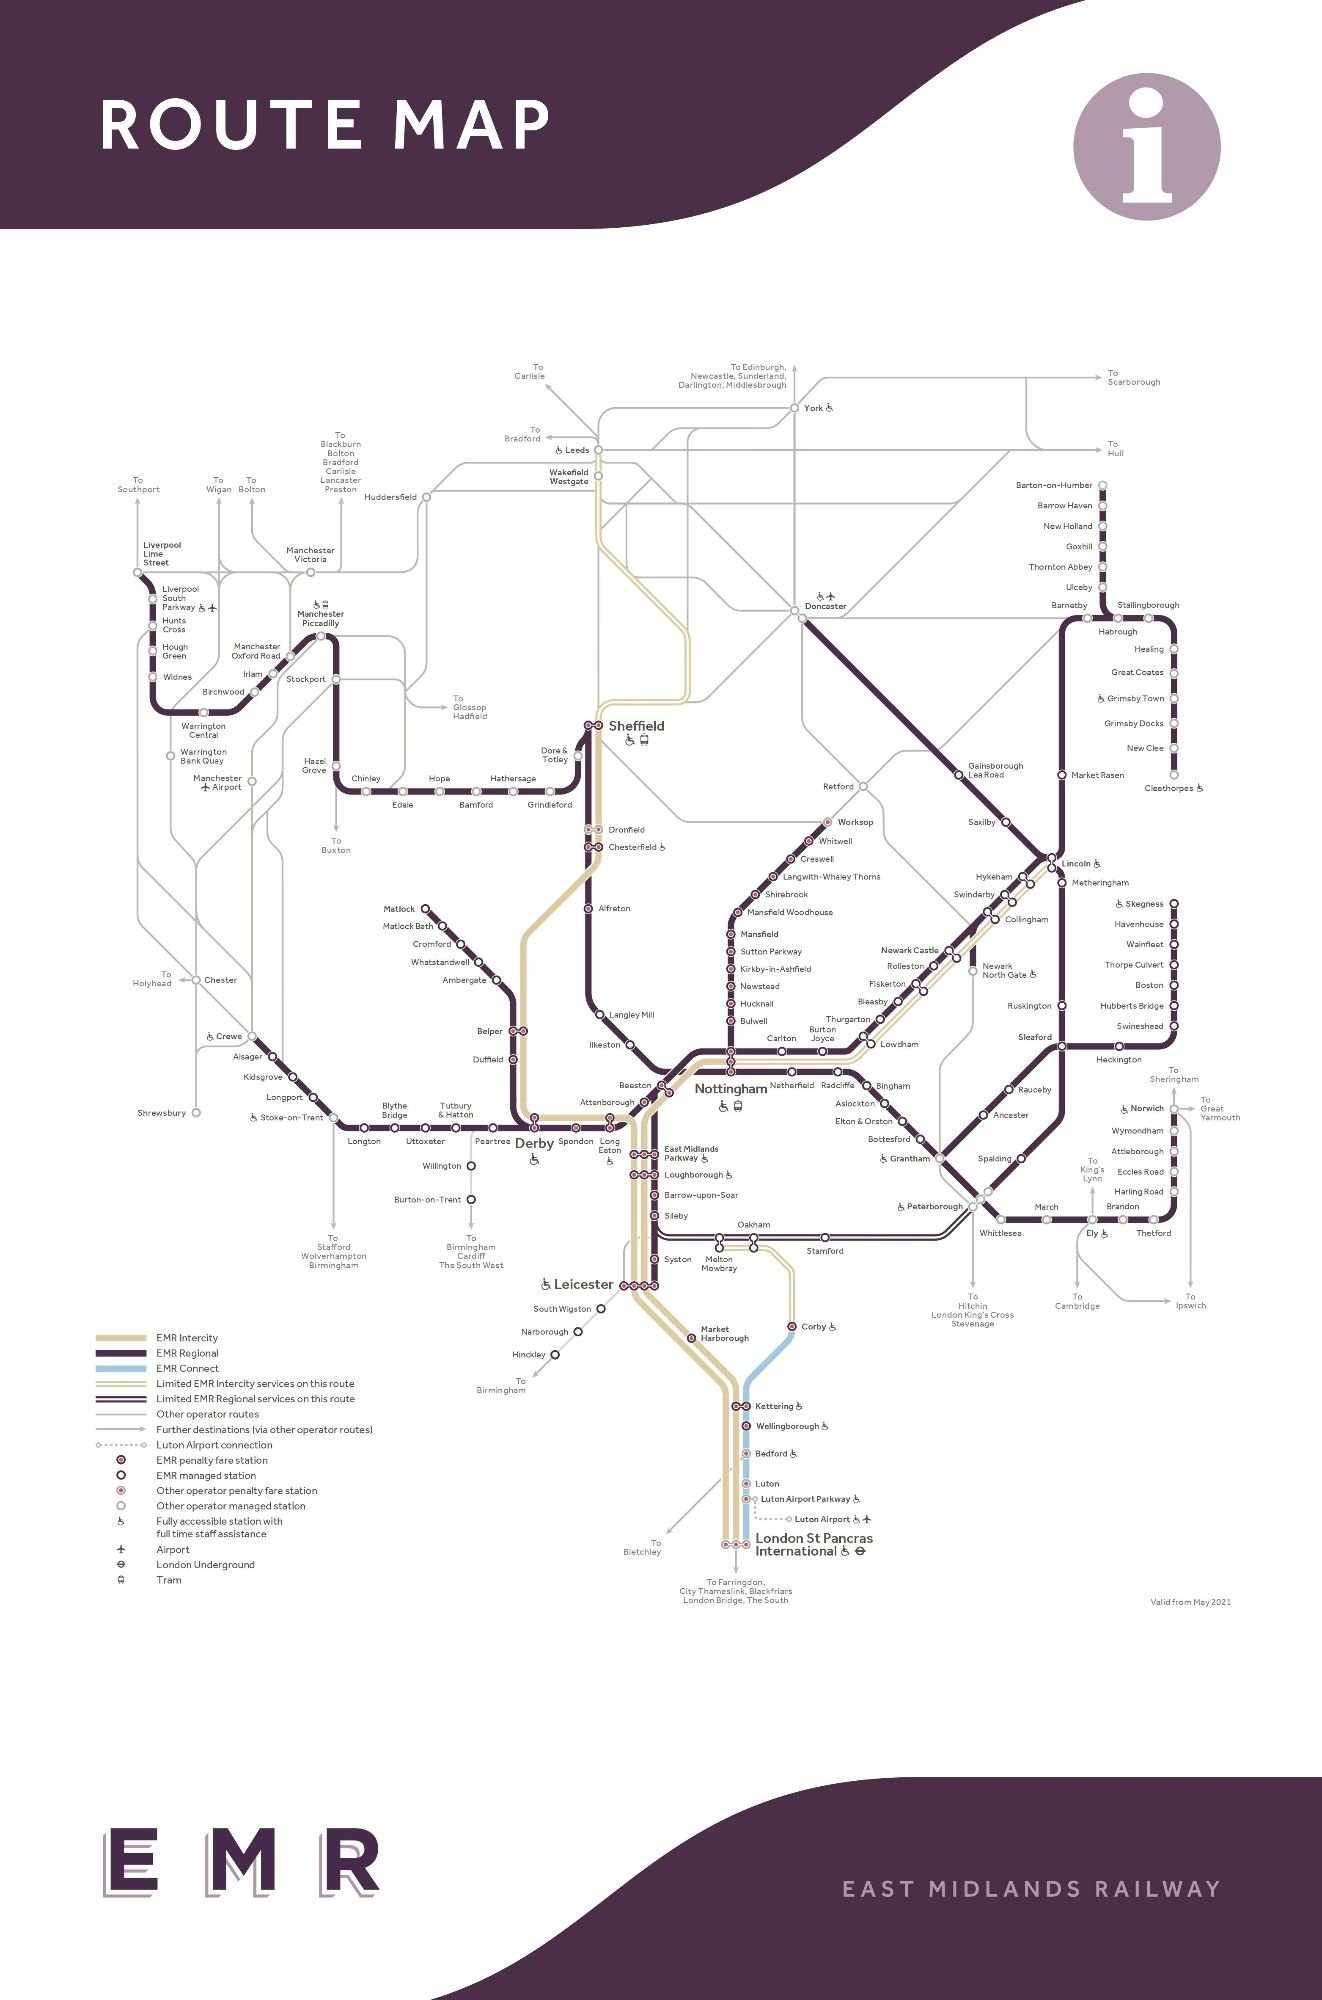 Image showing the East Midlands railway route map circa 2021.